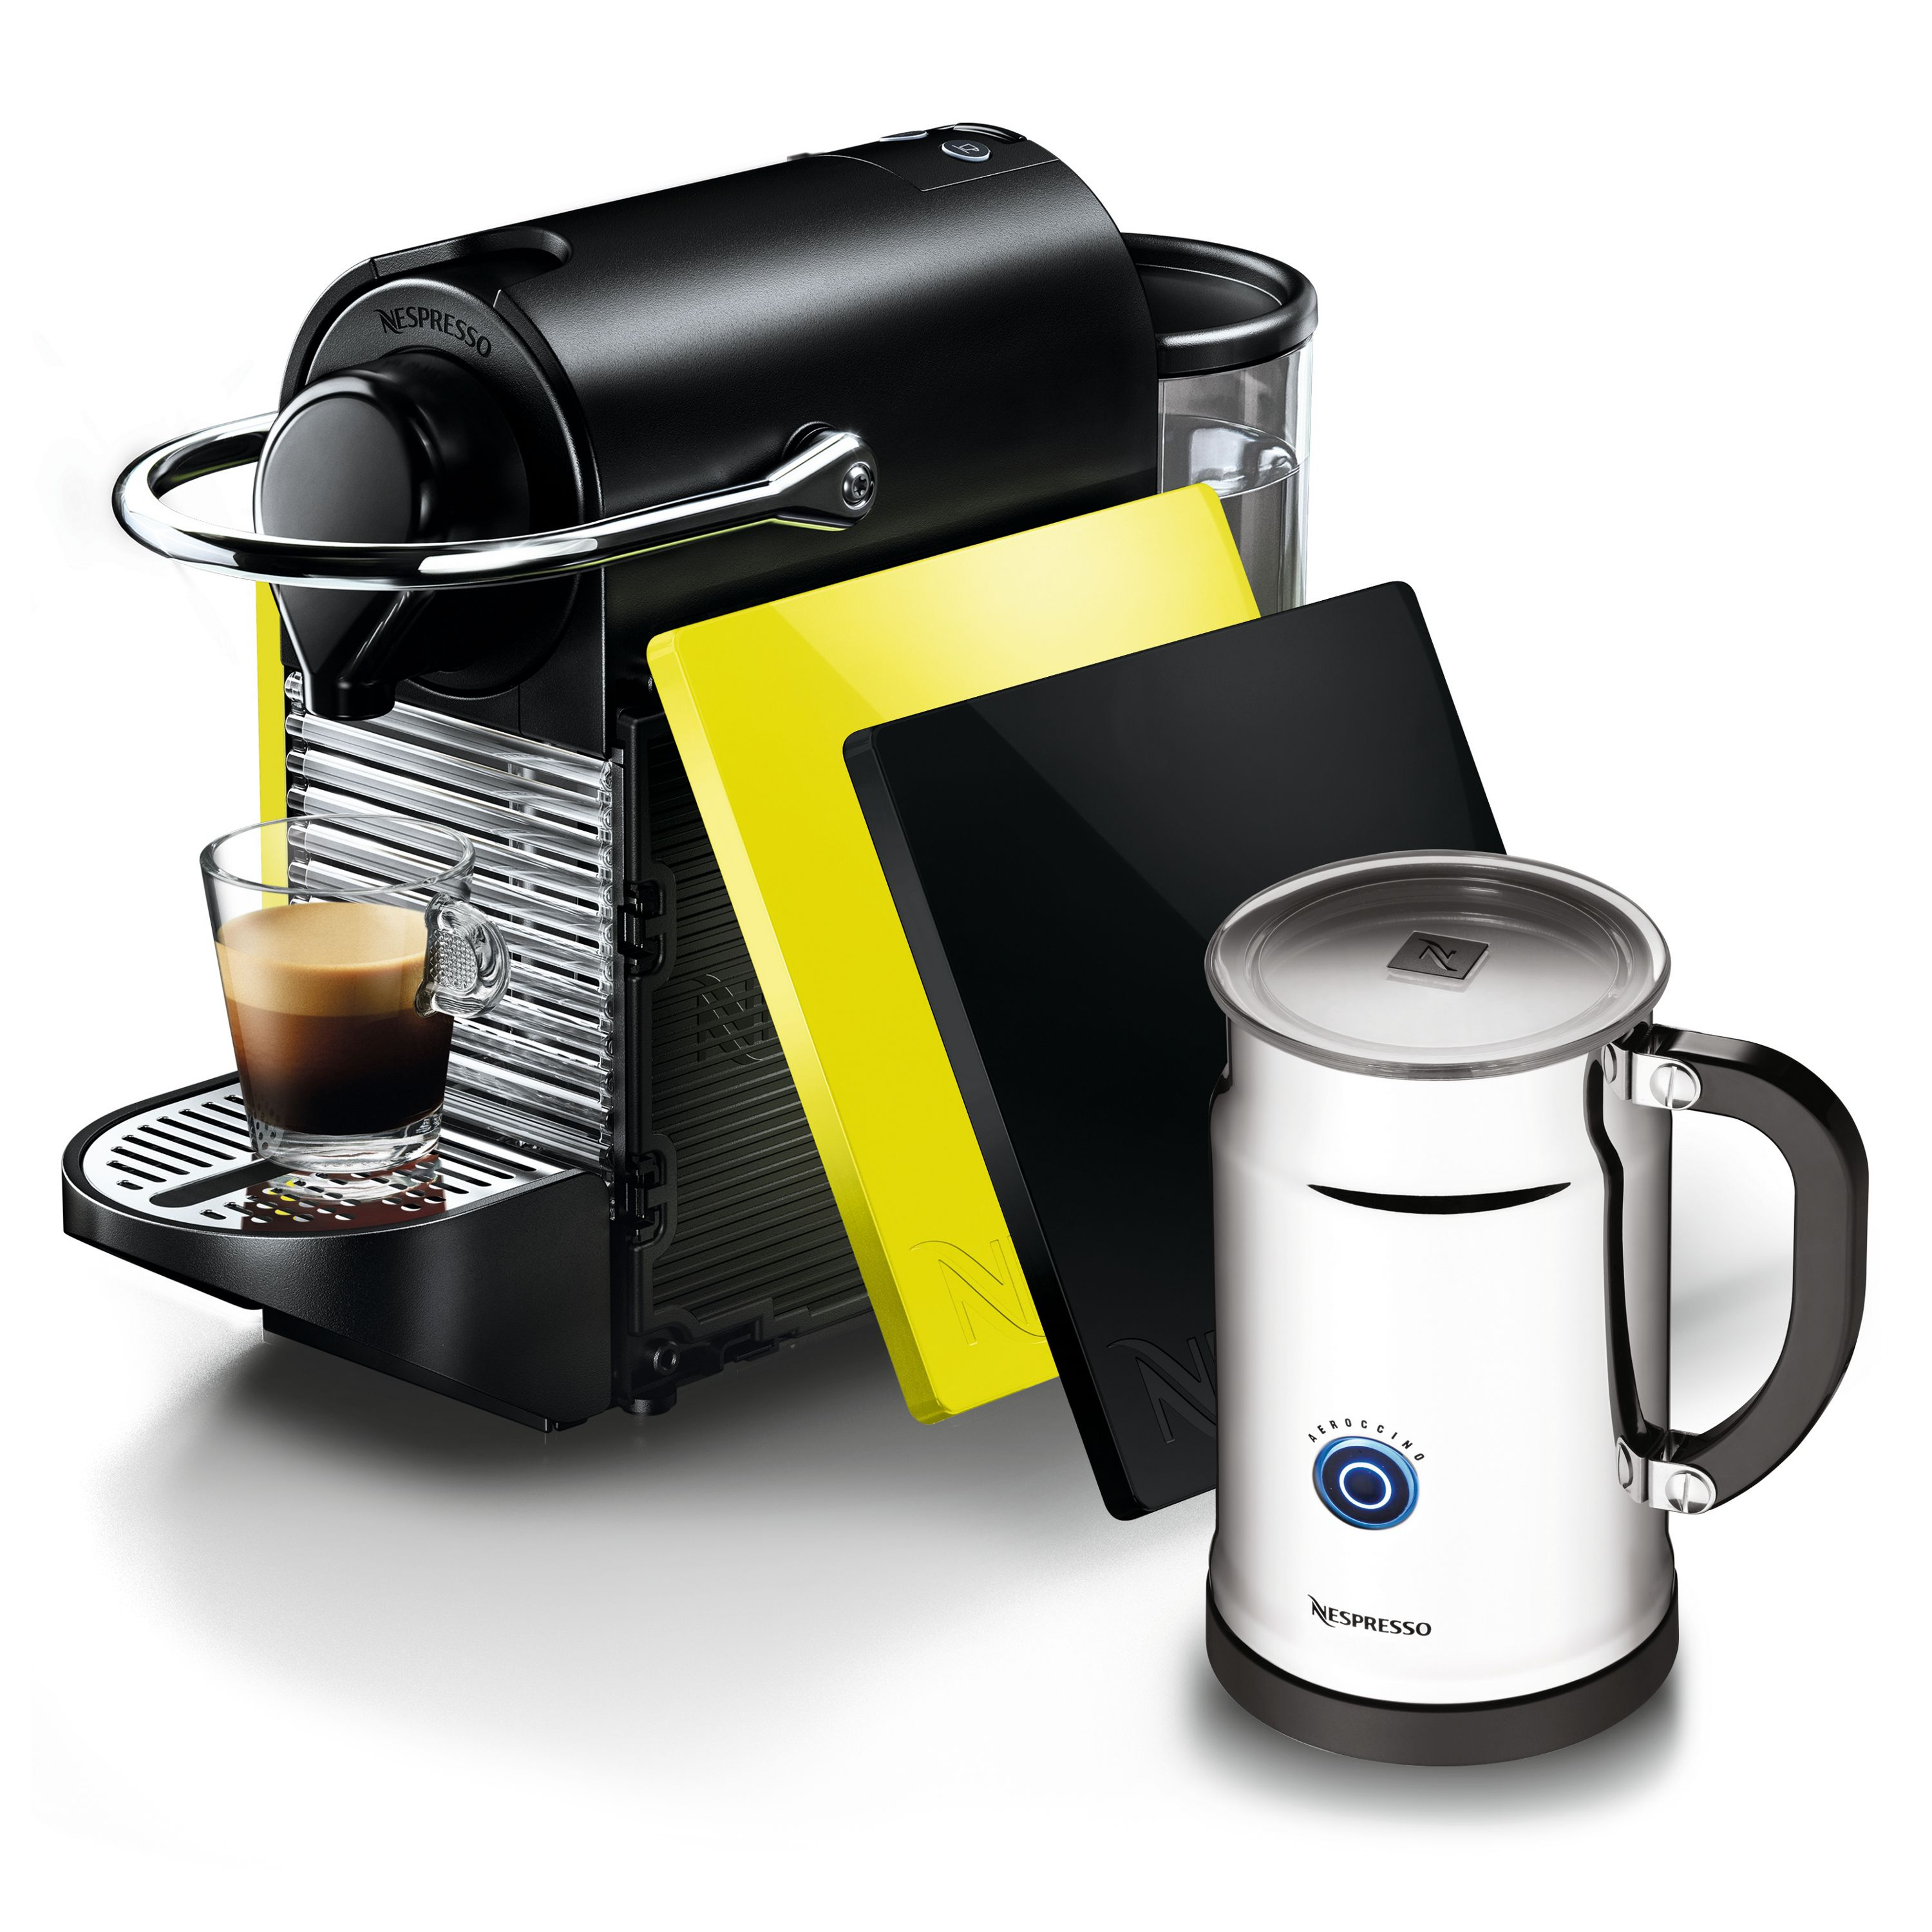 Indulge in a rich cup of coffee, house style lungo, or